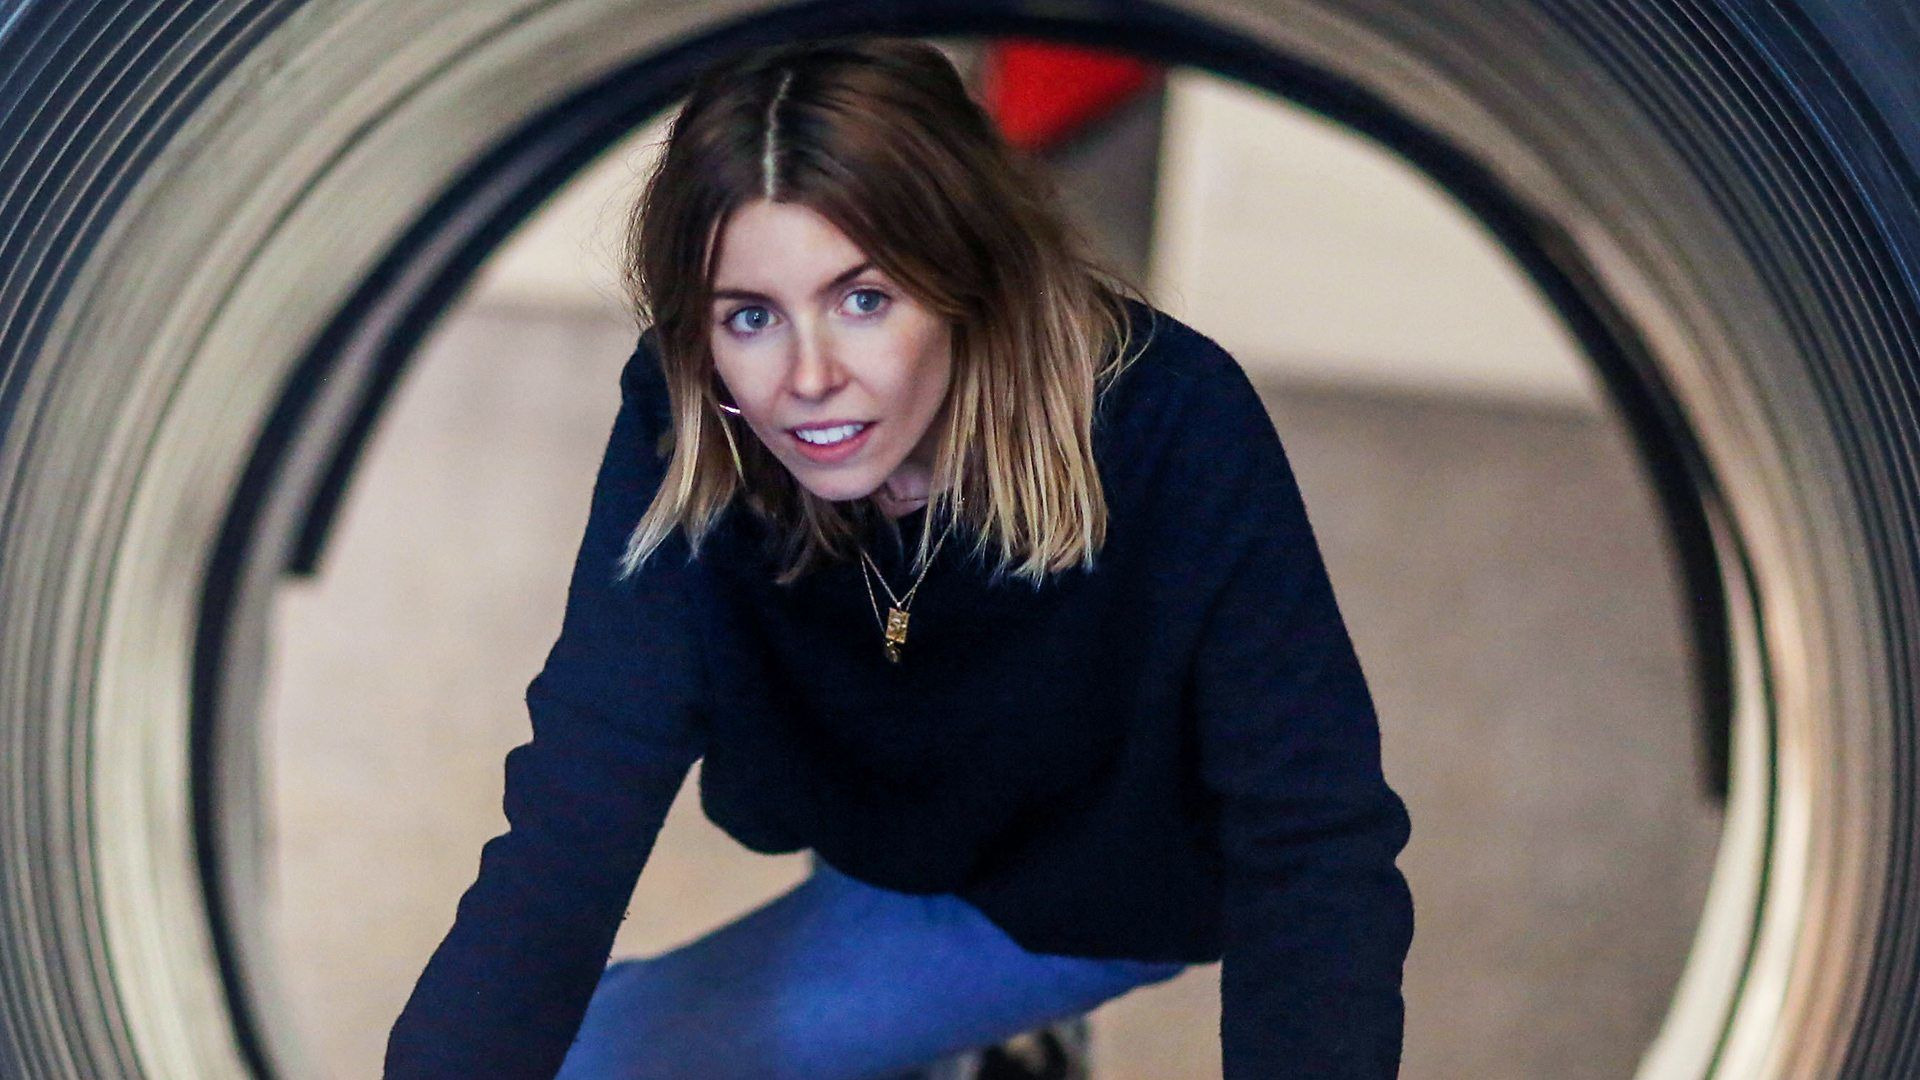 Stacey Dooley Investigates — s07 special-1 — Face to Face with Armageddon